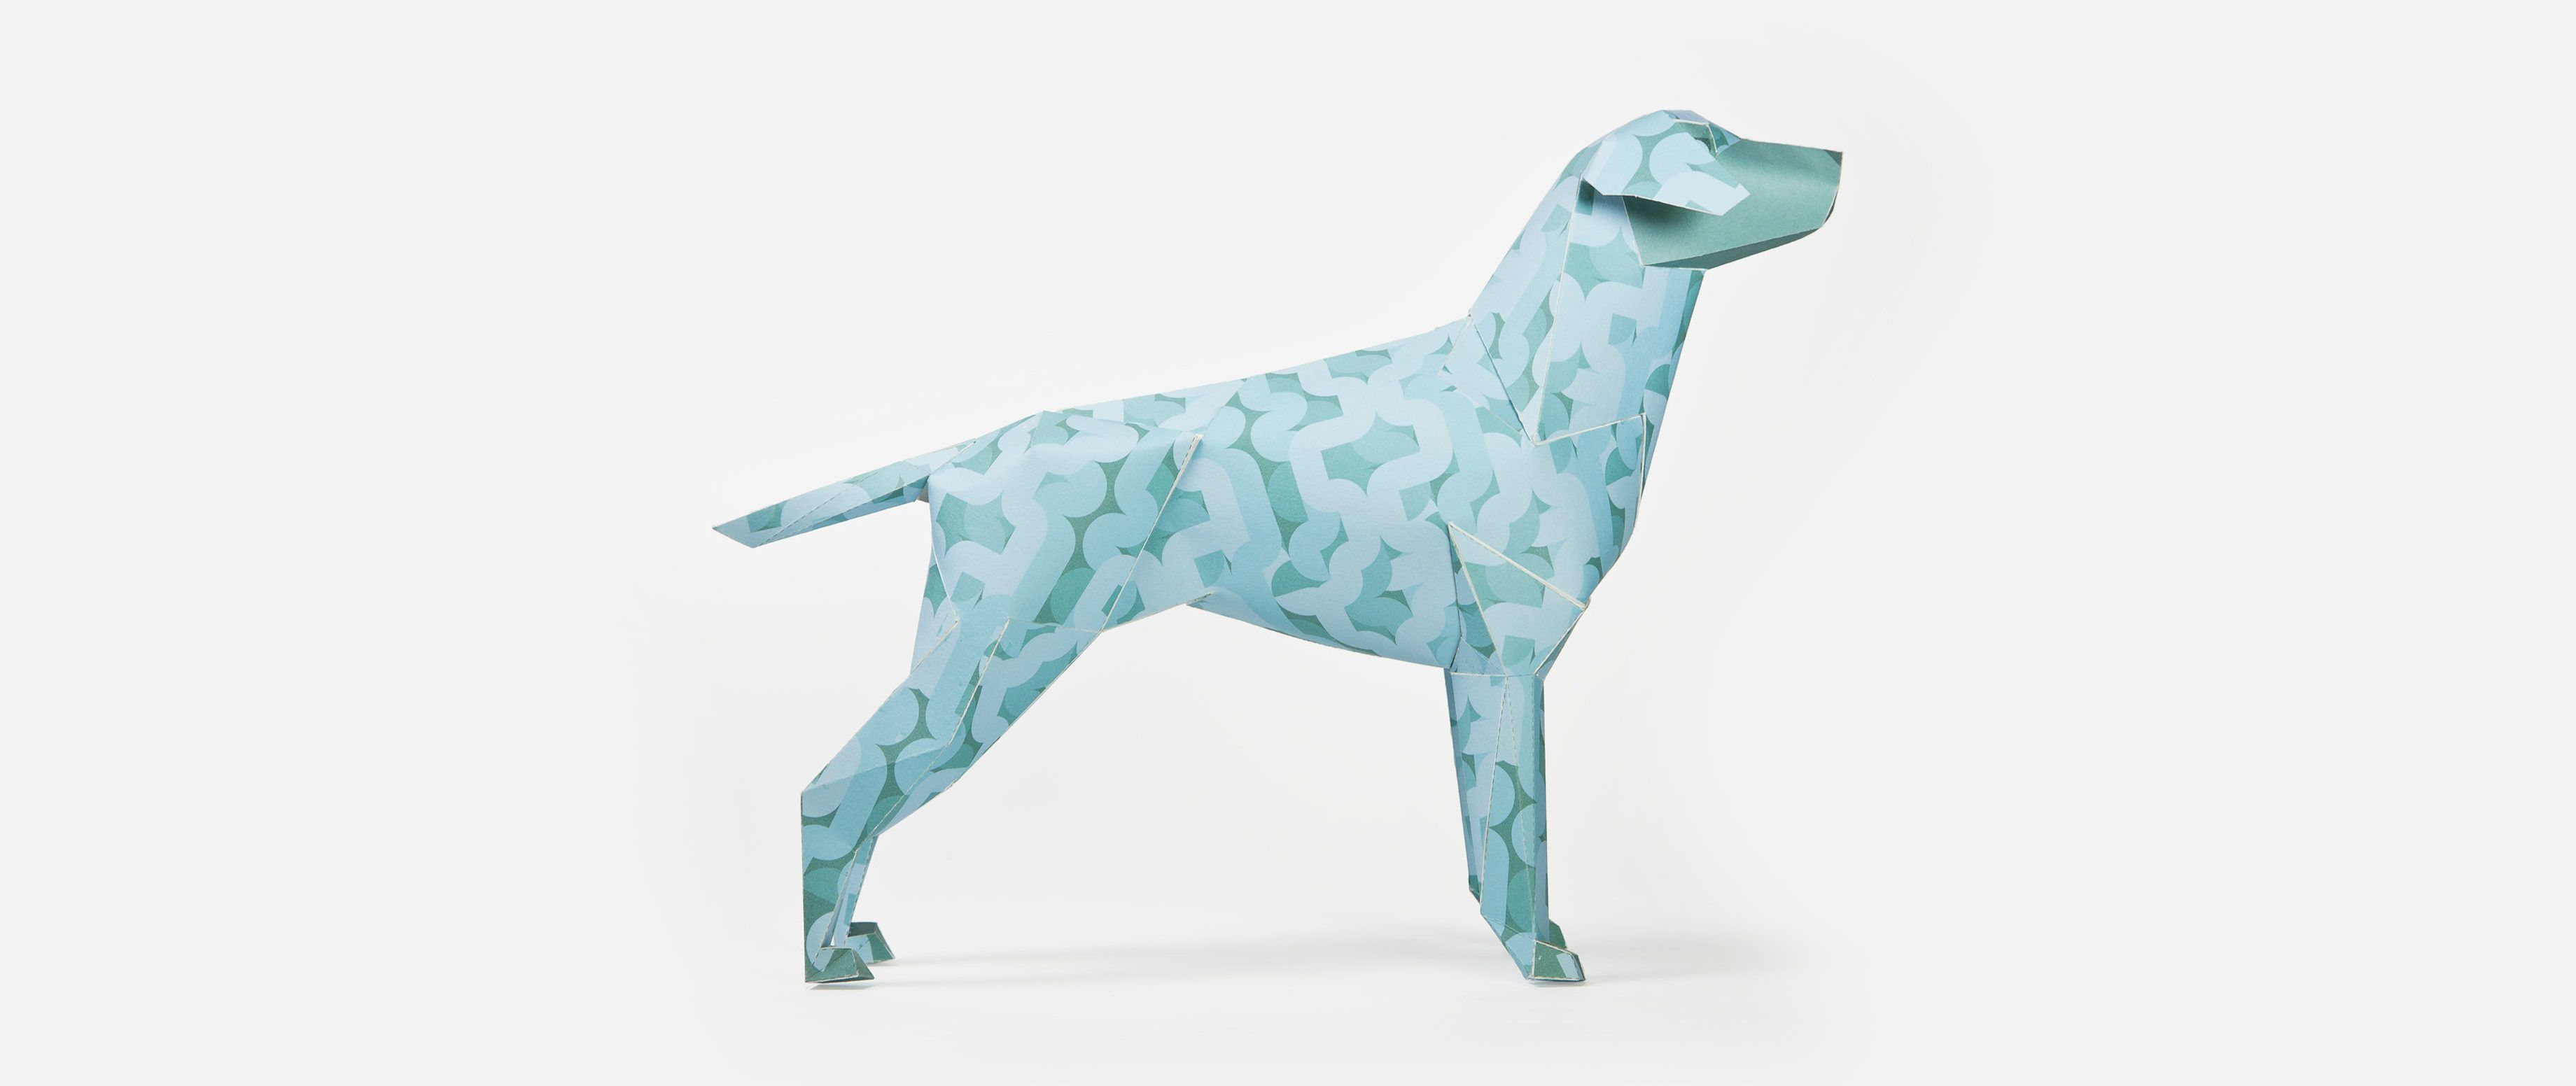 004 woof gerald by alan dalby (With images) Dog